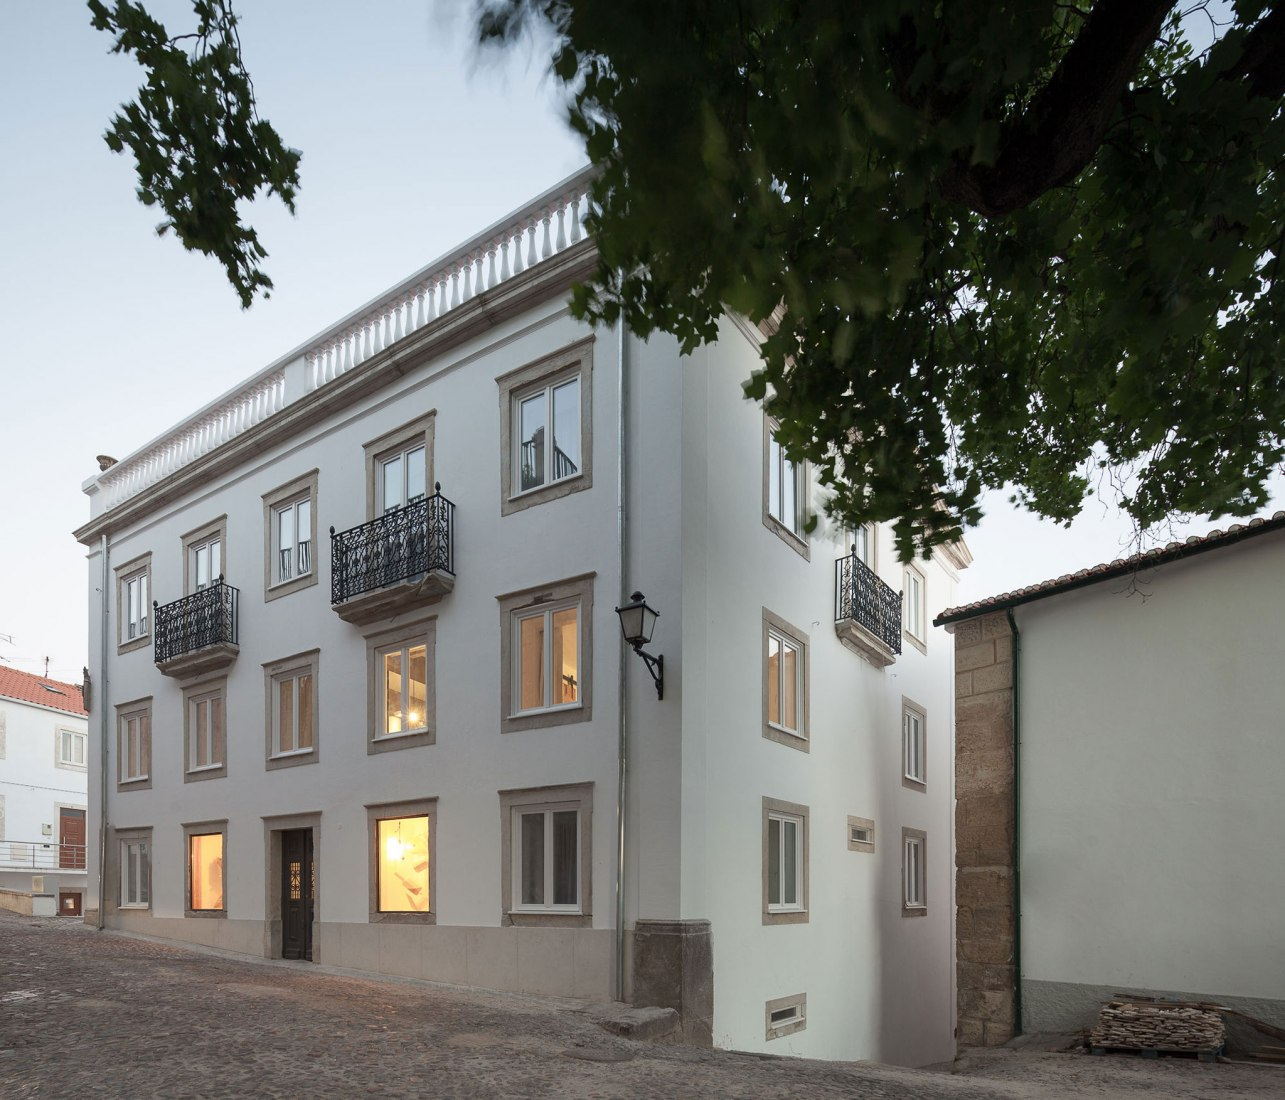 Hotel in Coimbra by depA Architects. Photograph by José Campos